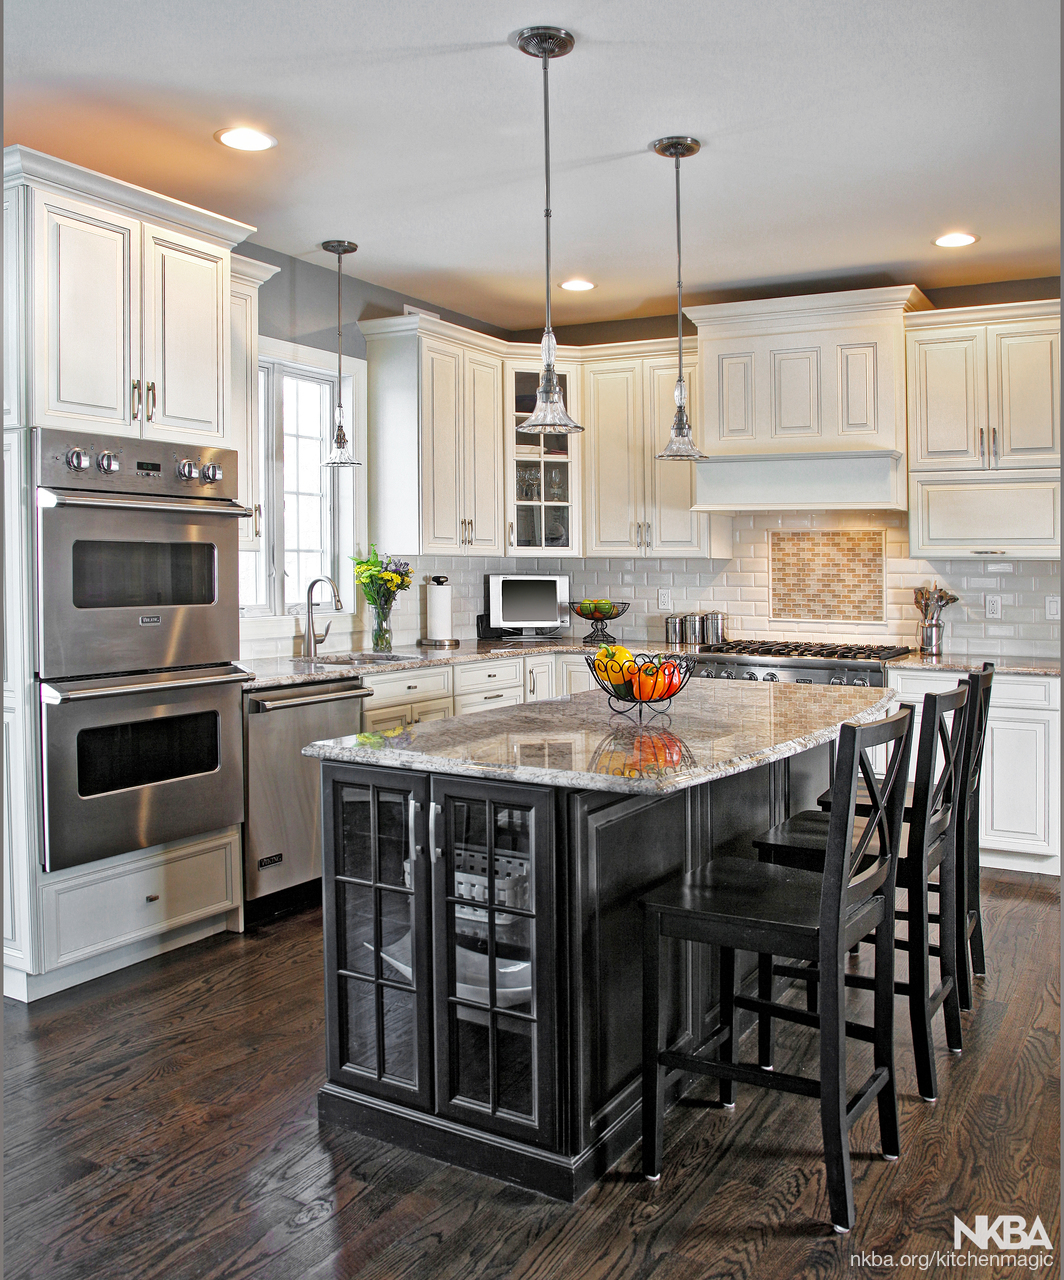 Ebony Black Island Surrounds By Antique White Cabinets Traditional Kitchen